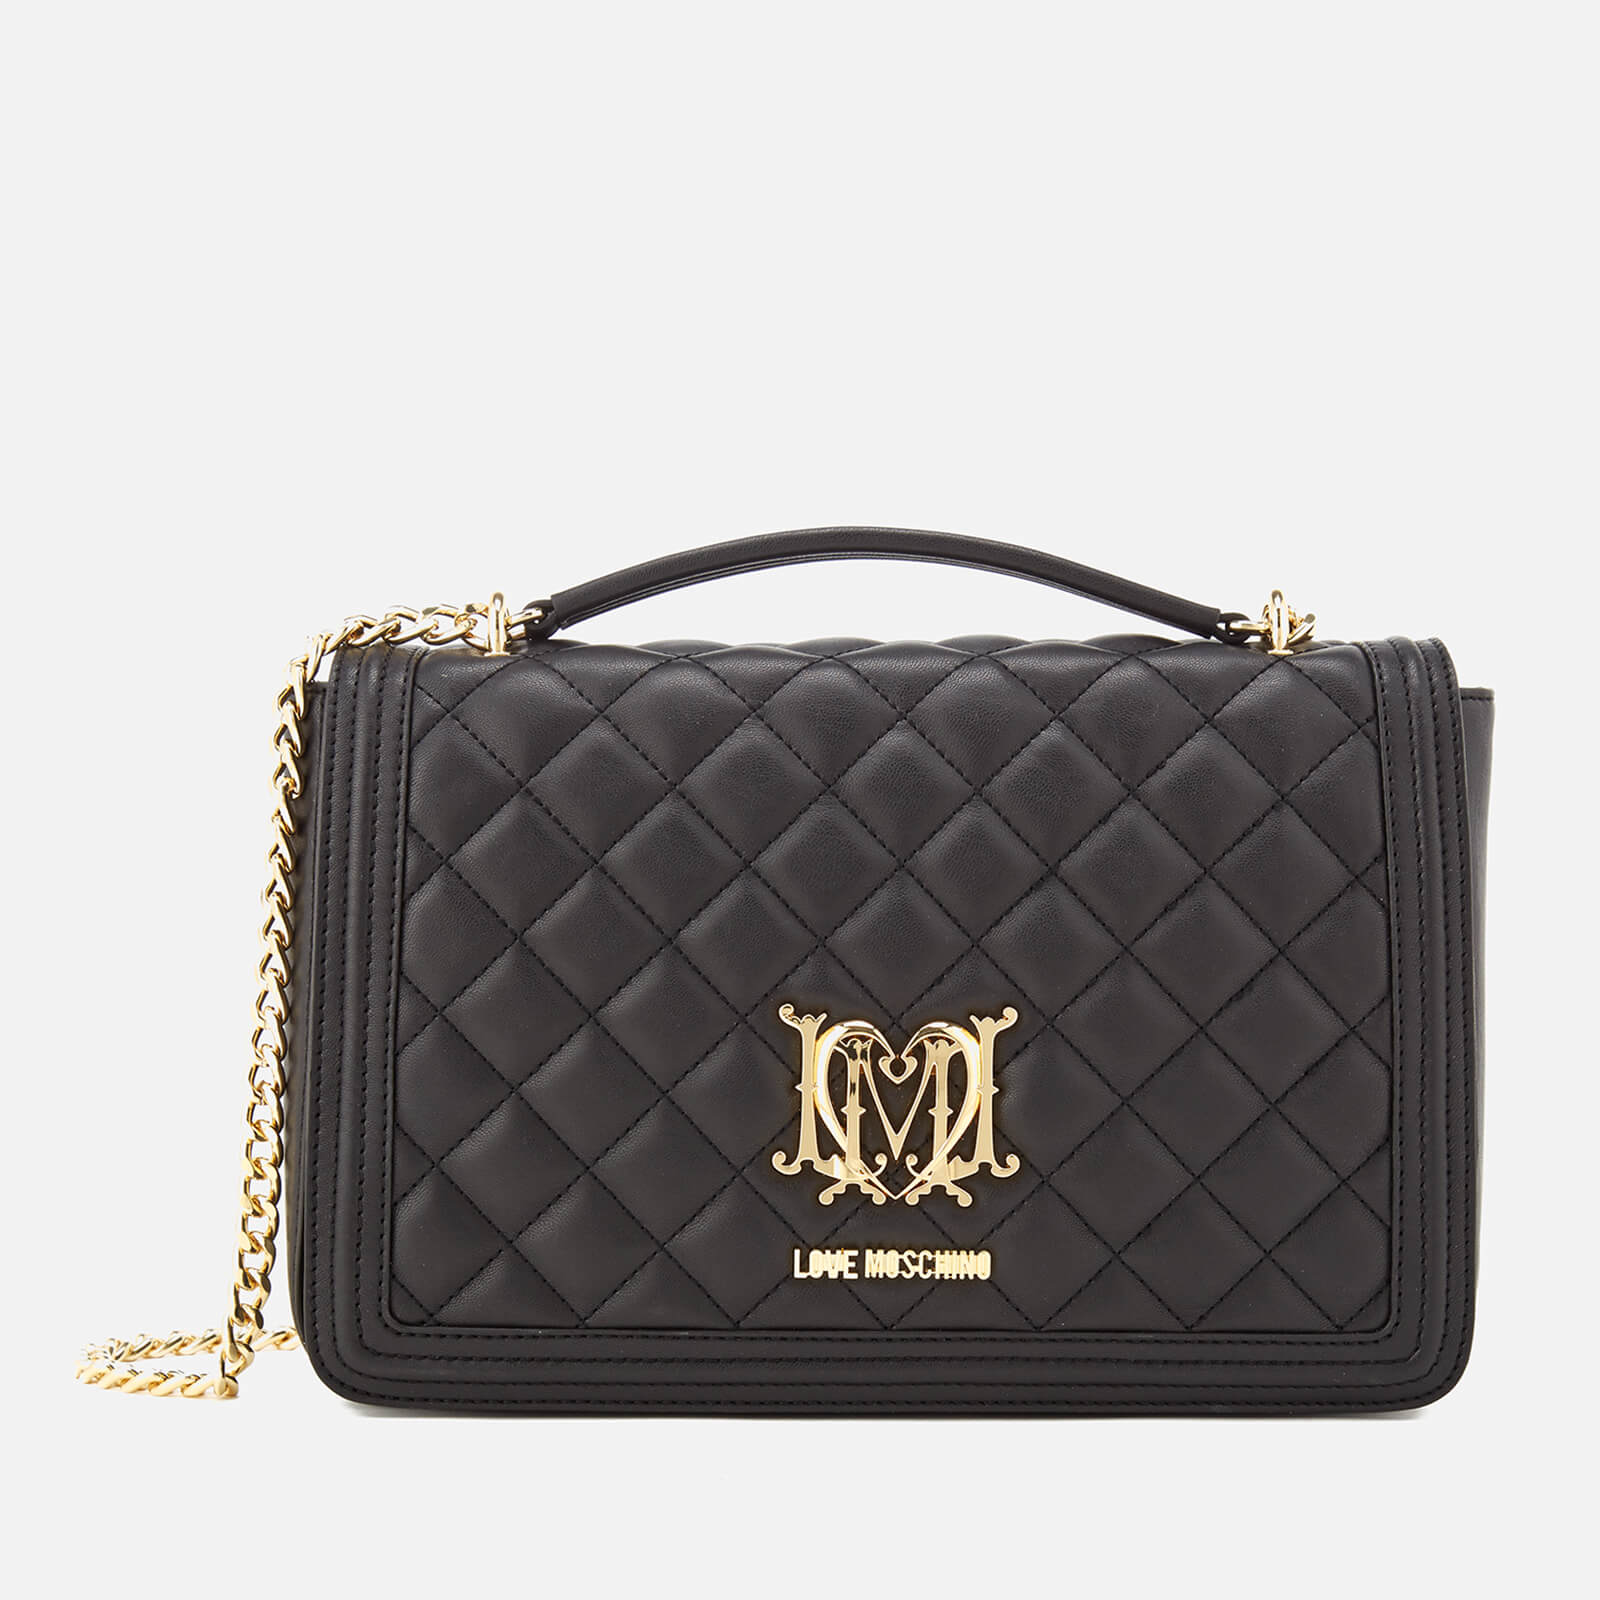 5e6a185232c Love Moschino Women's Quilted Medium Flap Shoulder Bag - Black - Free UK  Delivery over £50